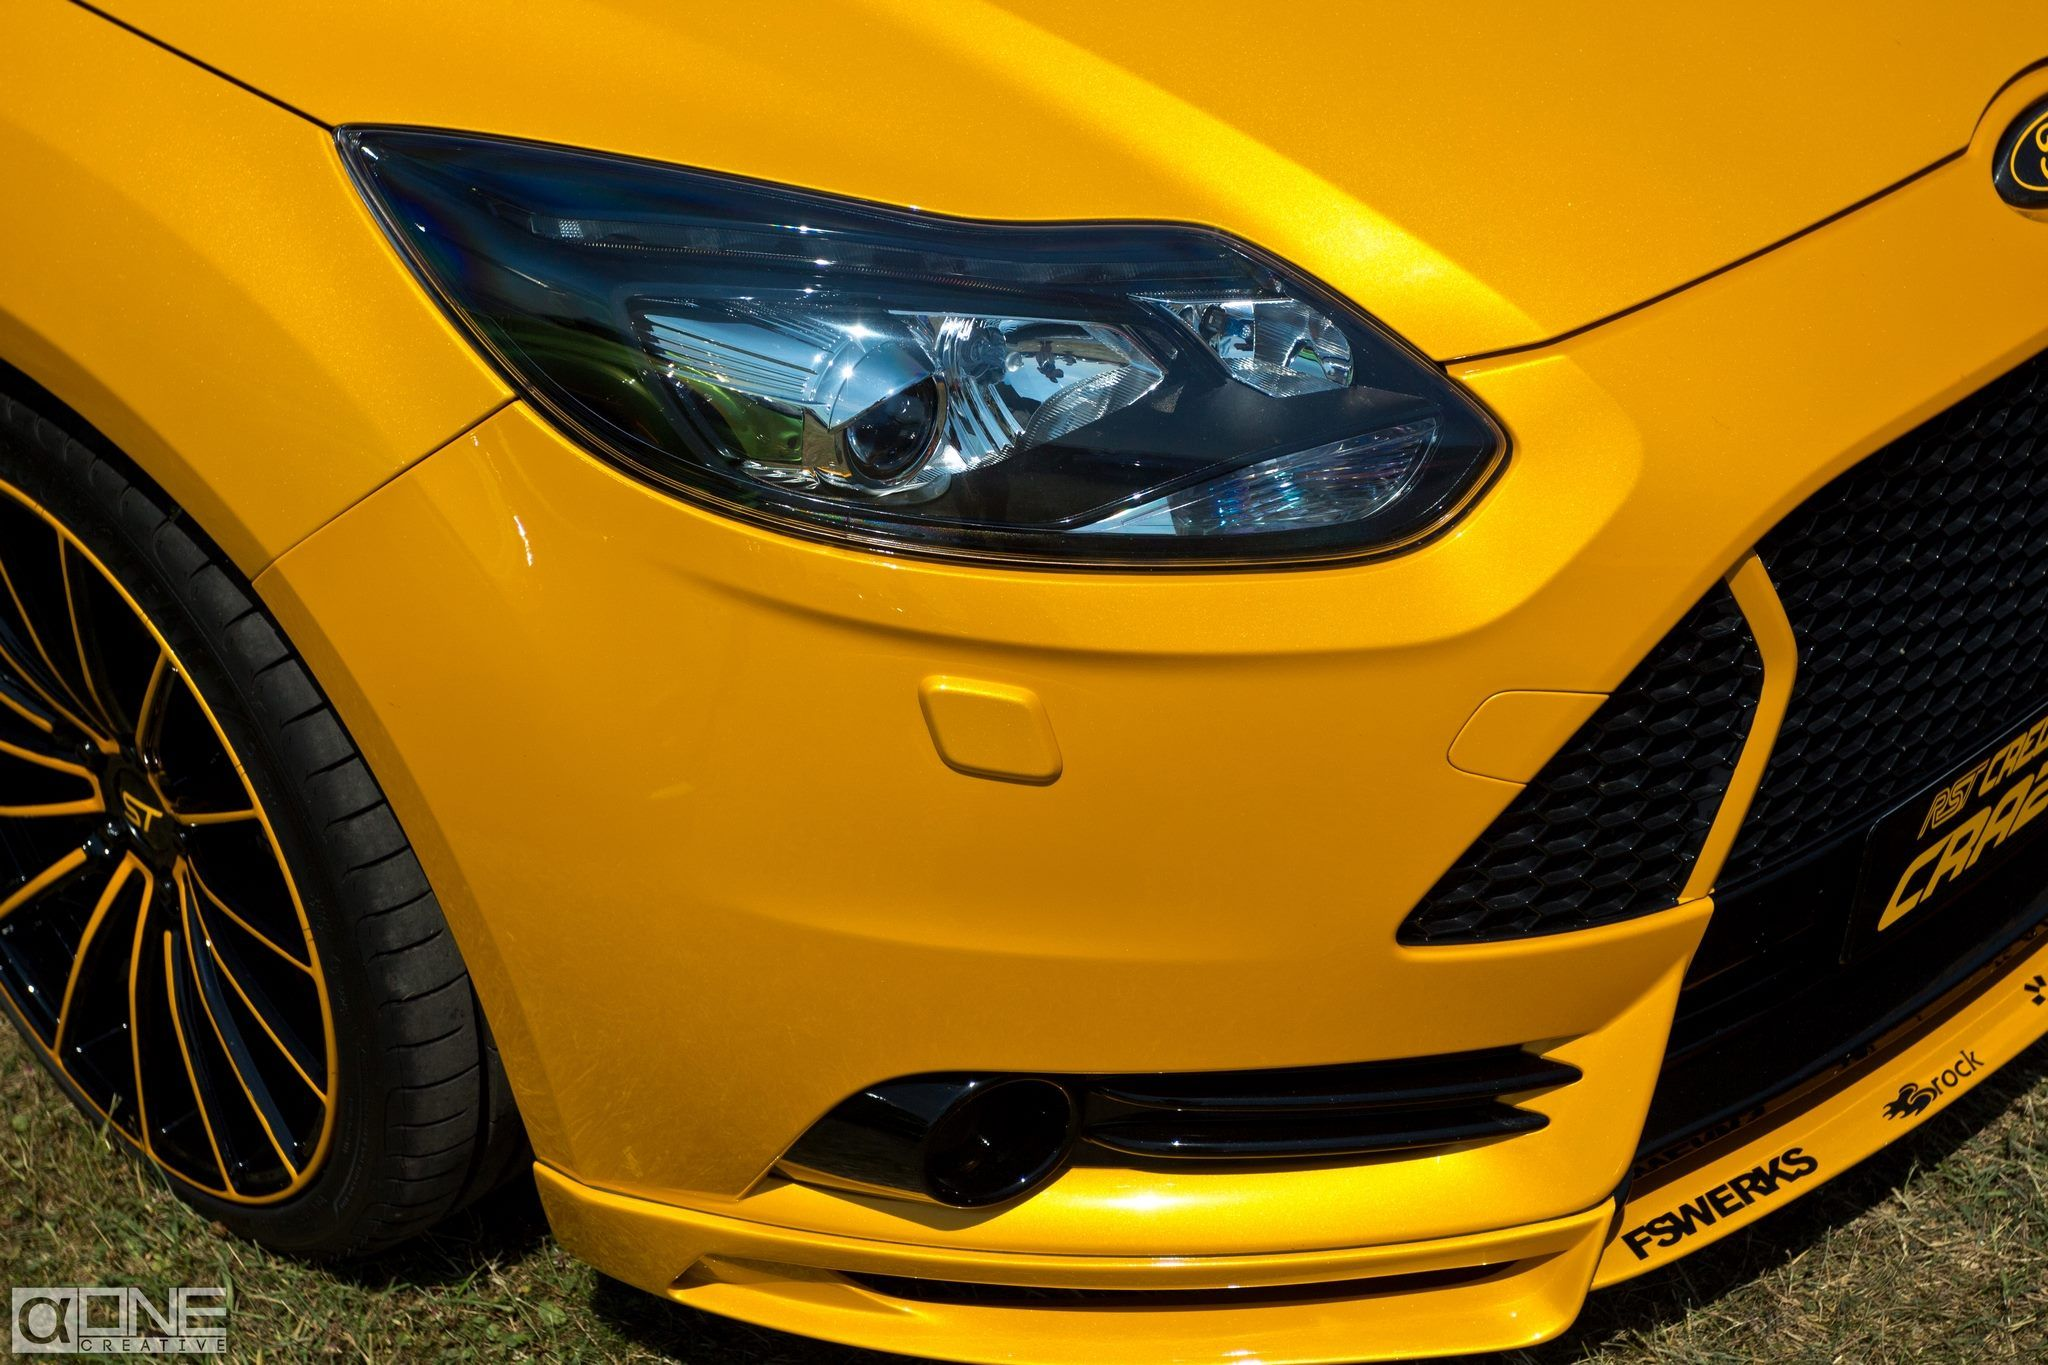 ford focus st 3 tuning big rims front bumper tuning. Black Bedroom Furniture Sets. Home Design Ideas